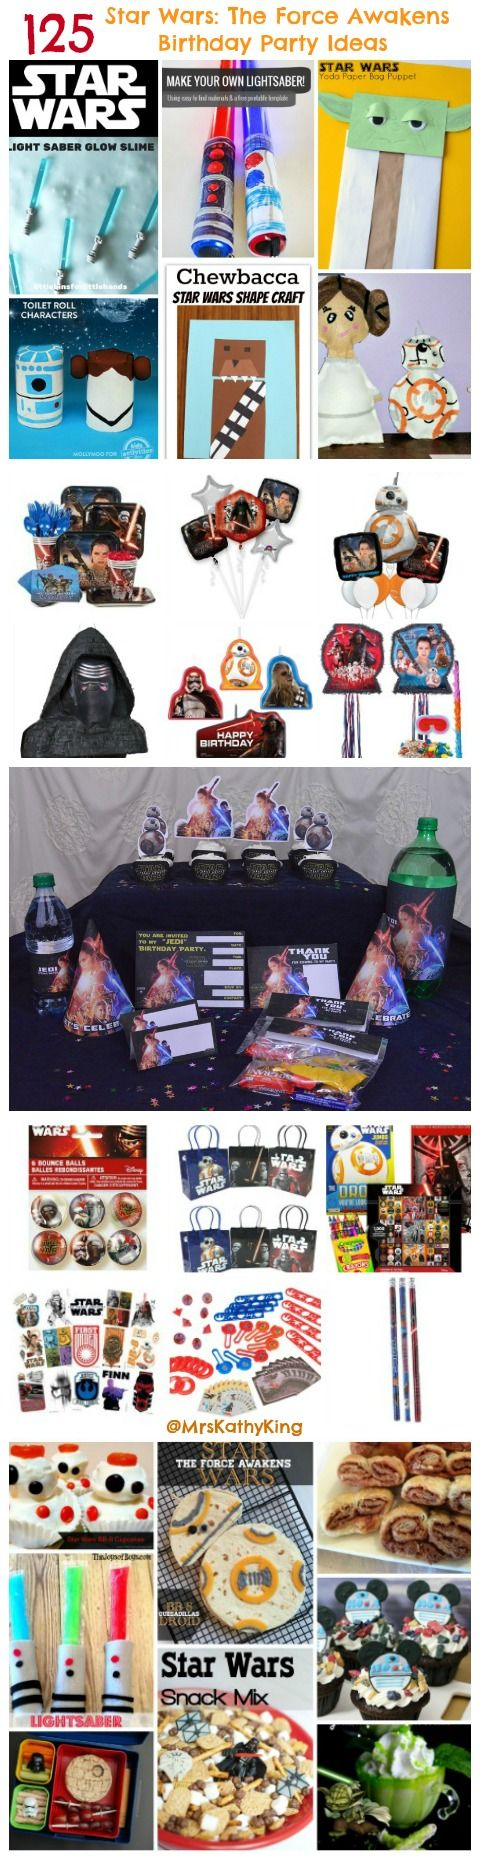 Planning a Star Wars The Force Awakens Party? Our list or 125 Star Wars: The Force Awakens Birthday Party Ideas has everything you need to host an amazing party, Free Printables,  Star Wars The Force Awakens Invitations, Star Wars The Force Awakens Party Supplies, Star Wars  Crafts, Food, Star Wars The Force Awakens Goodie Bag Items, Star Wars The Force Awakens, BB Cup Cakes, Party Favors and Star Wars The Force Awakens Birthday Gift ideas all in one place.